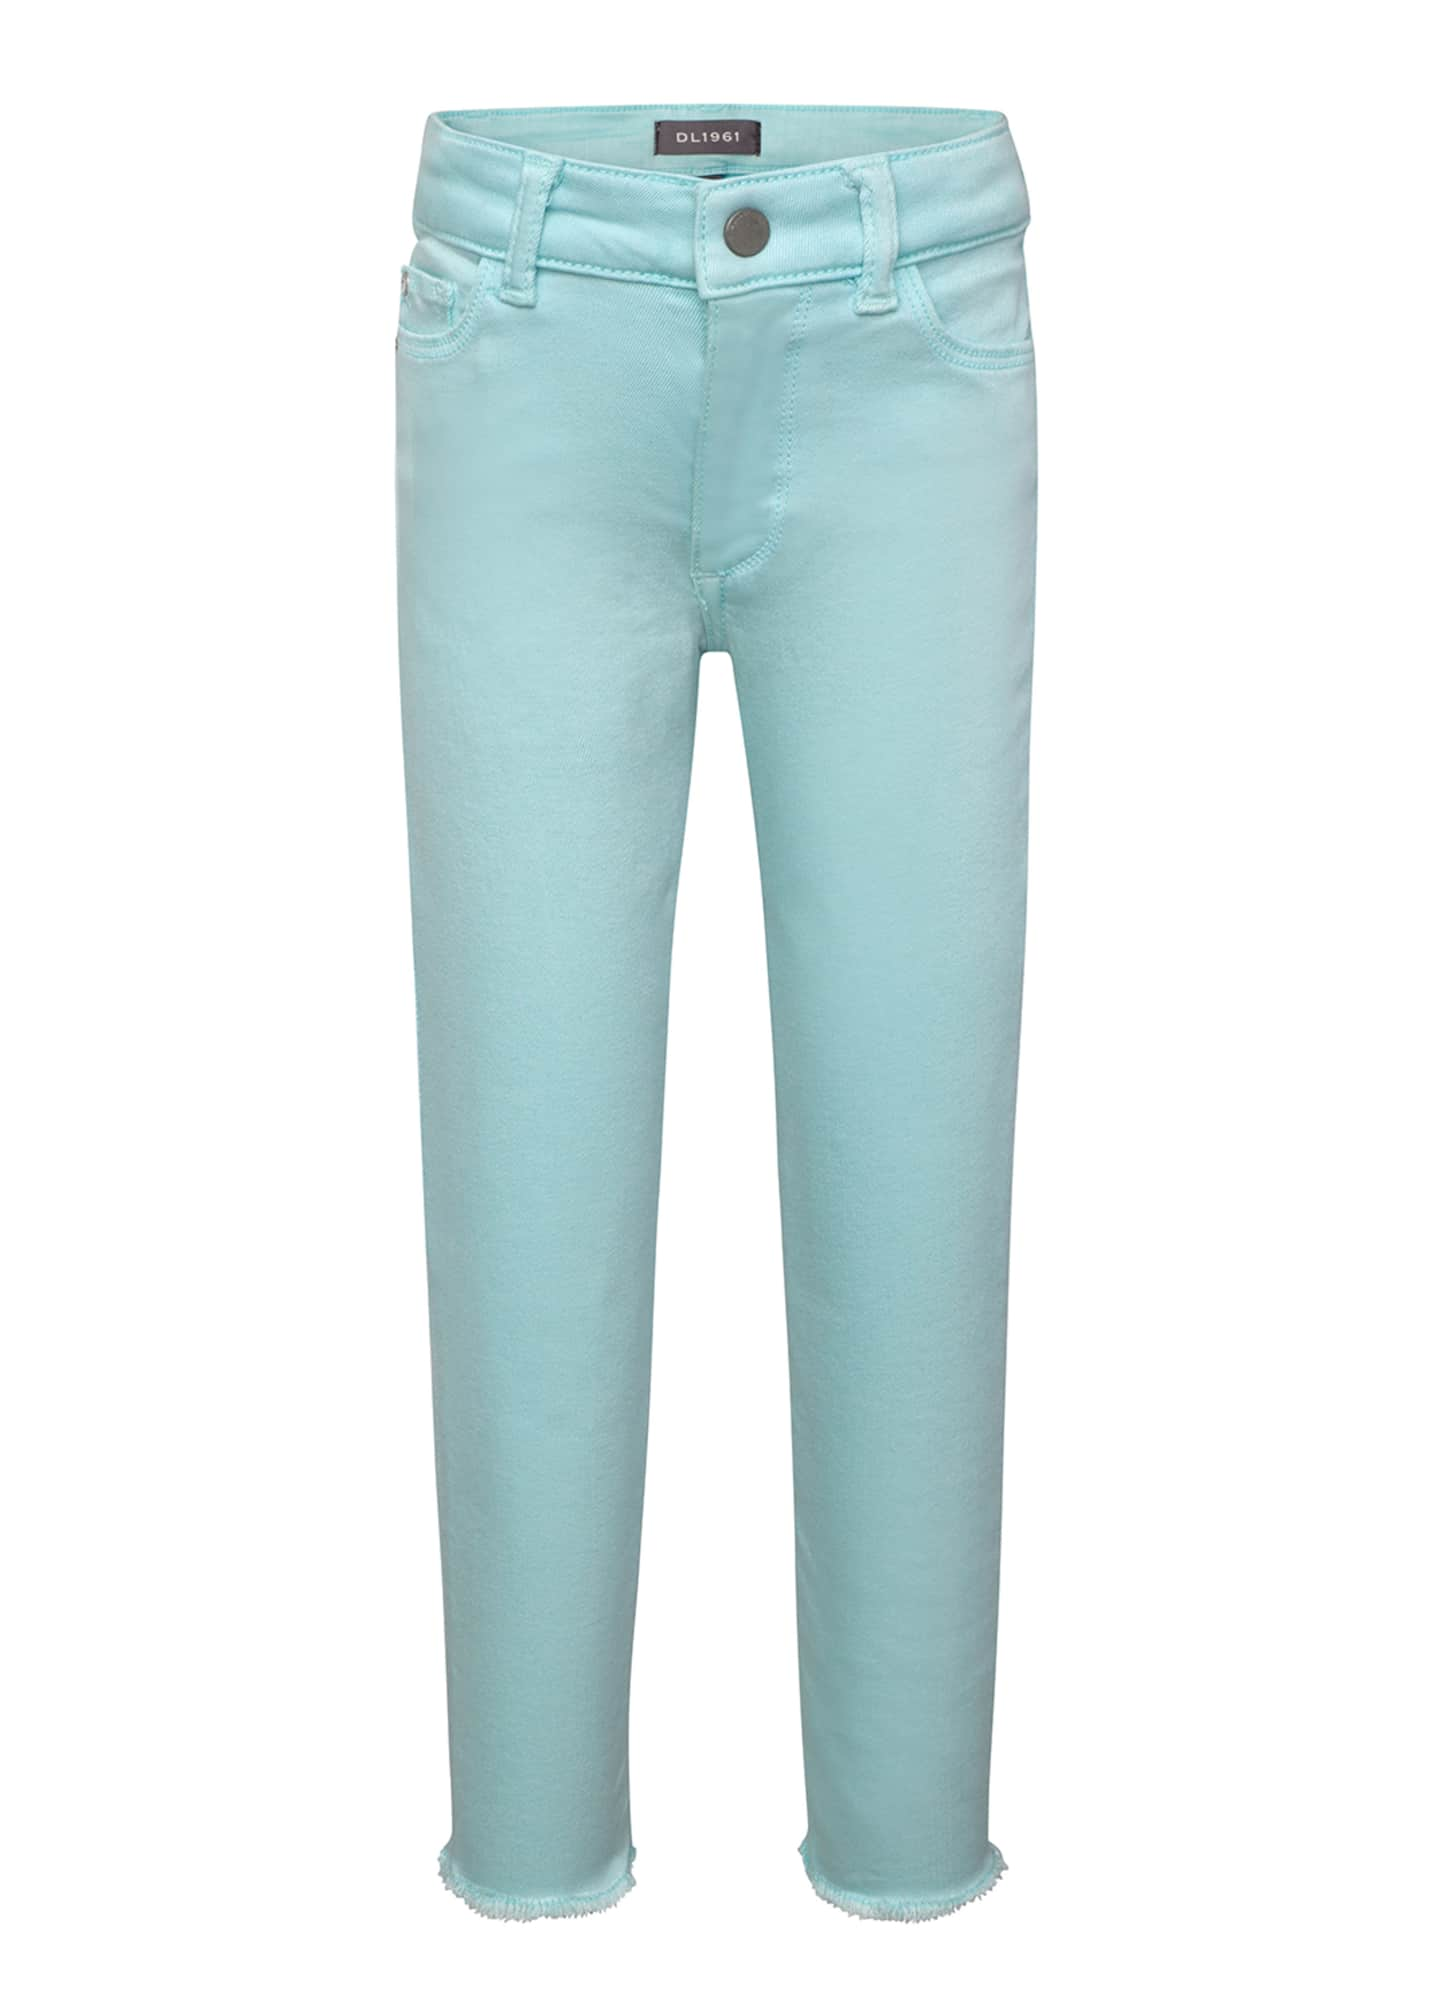 DL1961 Premium Denim Girls' Chloe Skinny Raw-Hem Acid